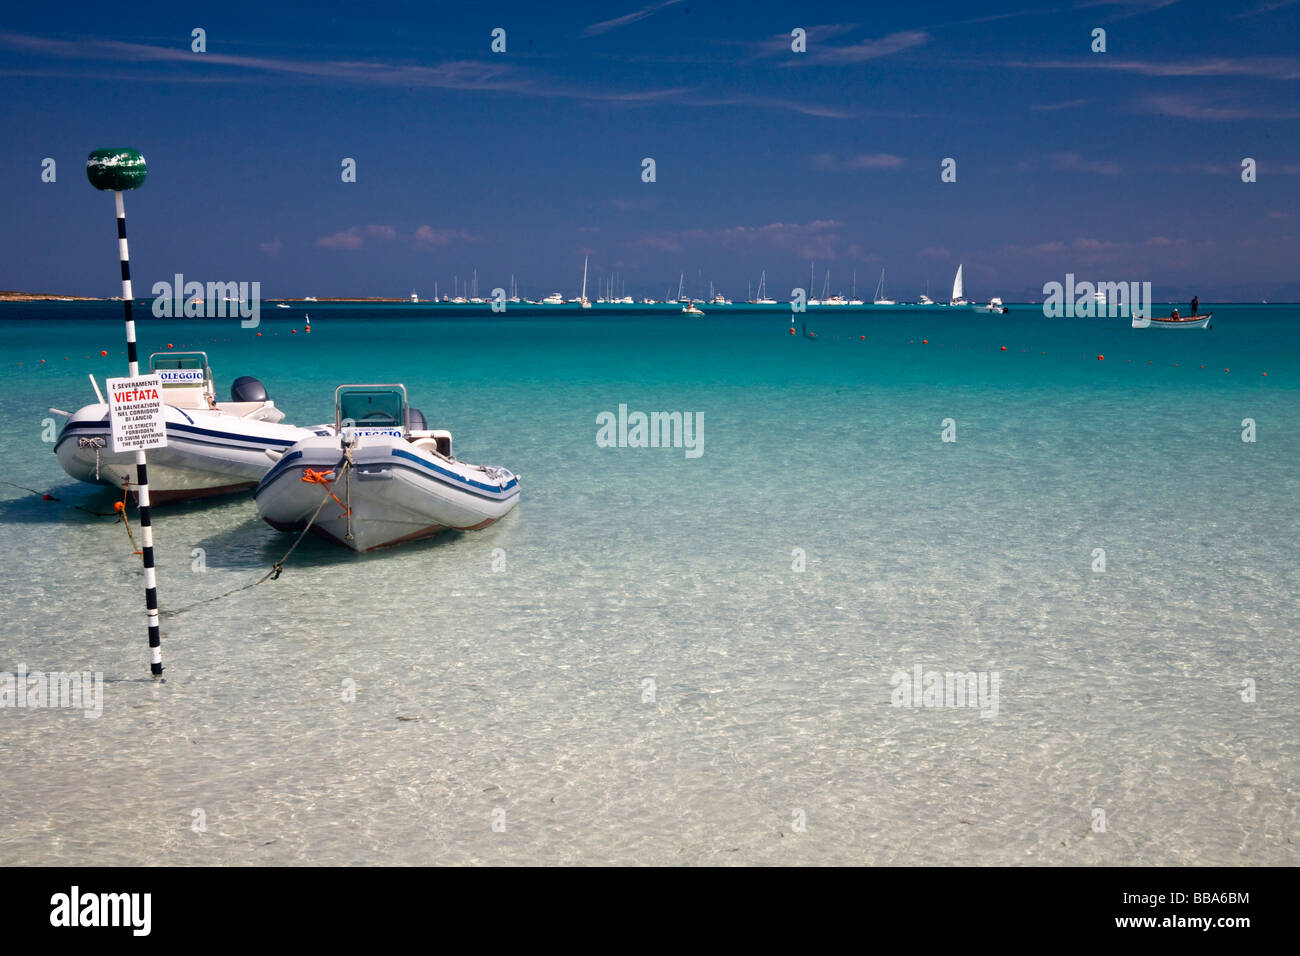 Beach of Stintino, Nurra region, province of Sassari, Sardinia, Italy Stock Photo